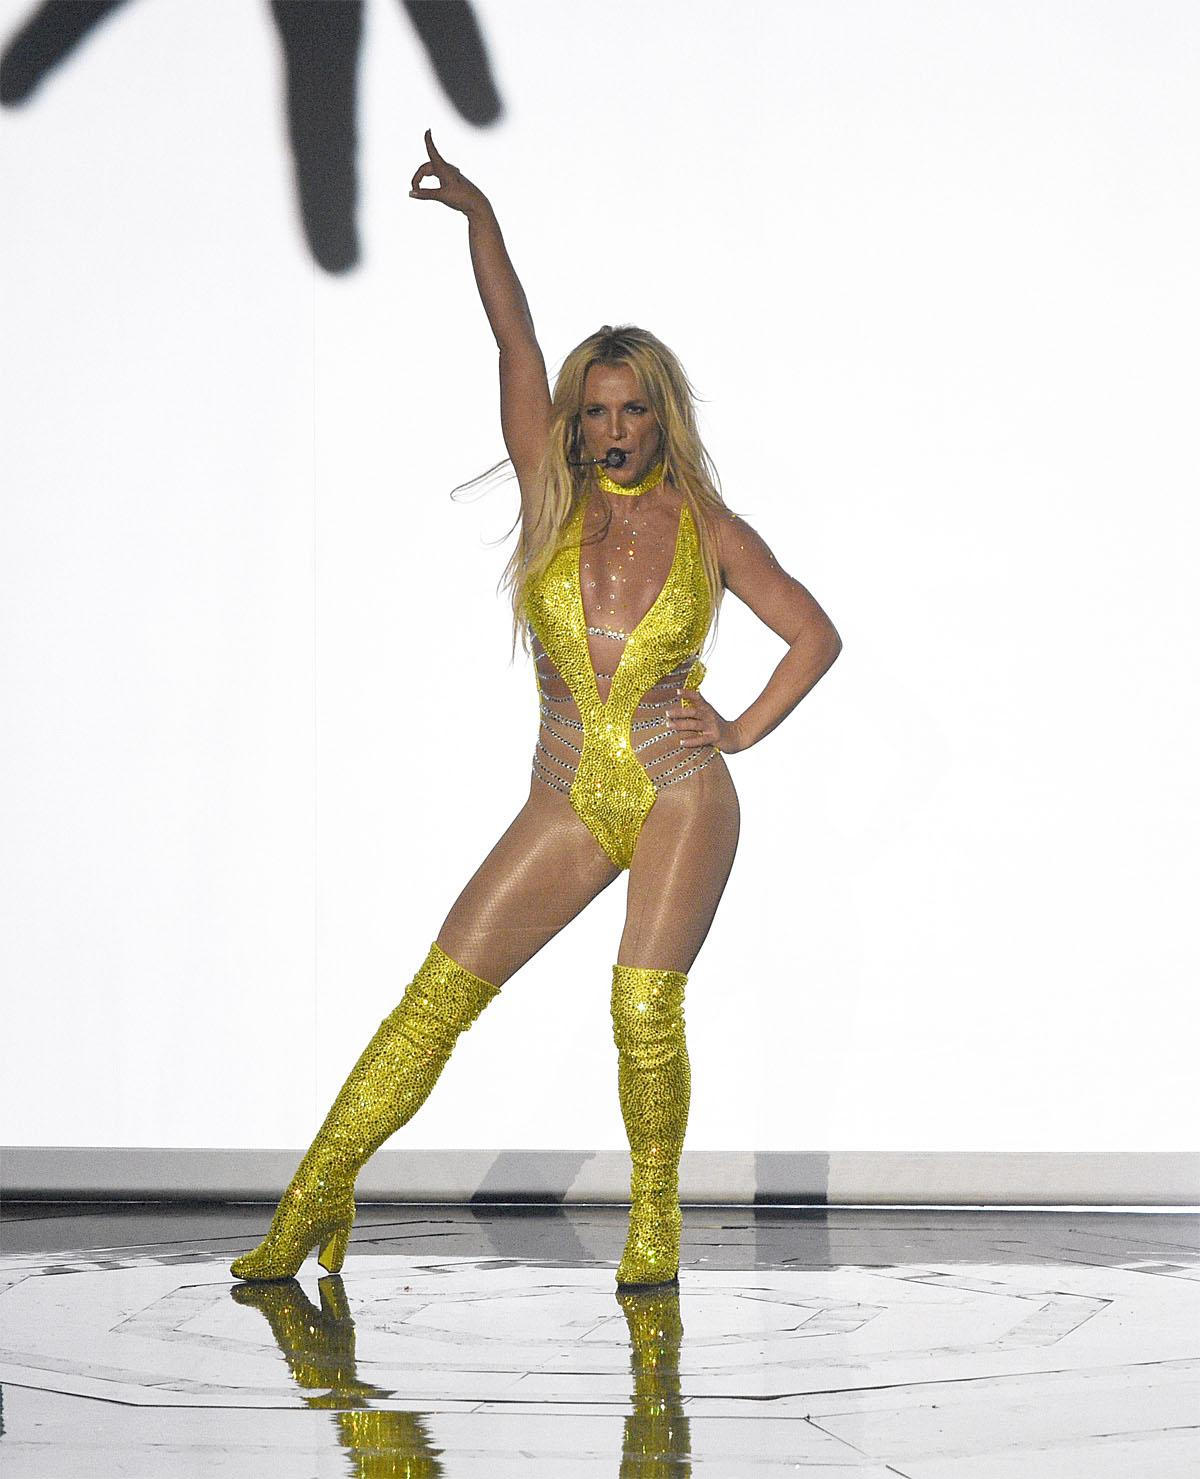 Britney Spears performs at the MTV Video Music Awards at Madison Square Garden on Sunday, Aug. 28, 2016, in New York. (Photo by Chris Pizzello/Invision/AP)